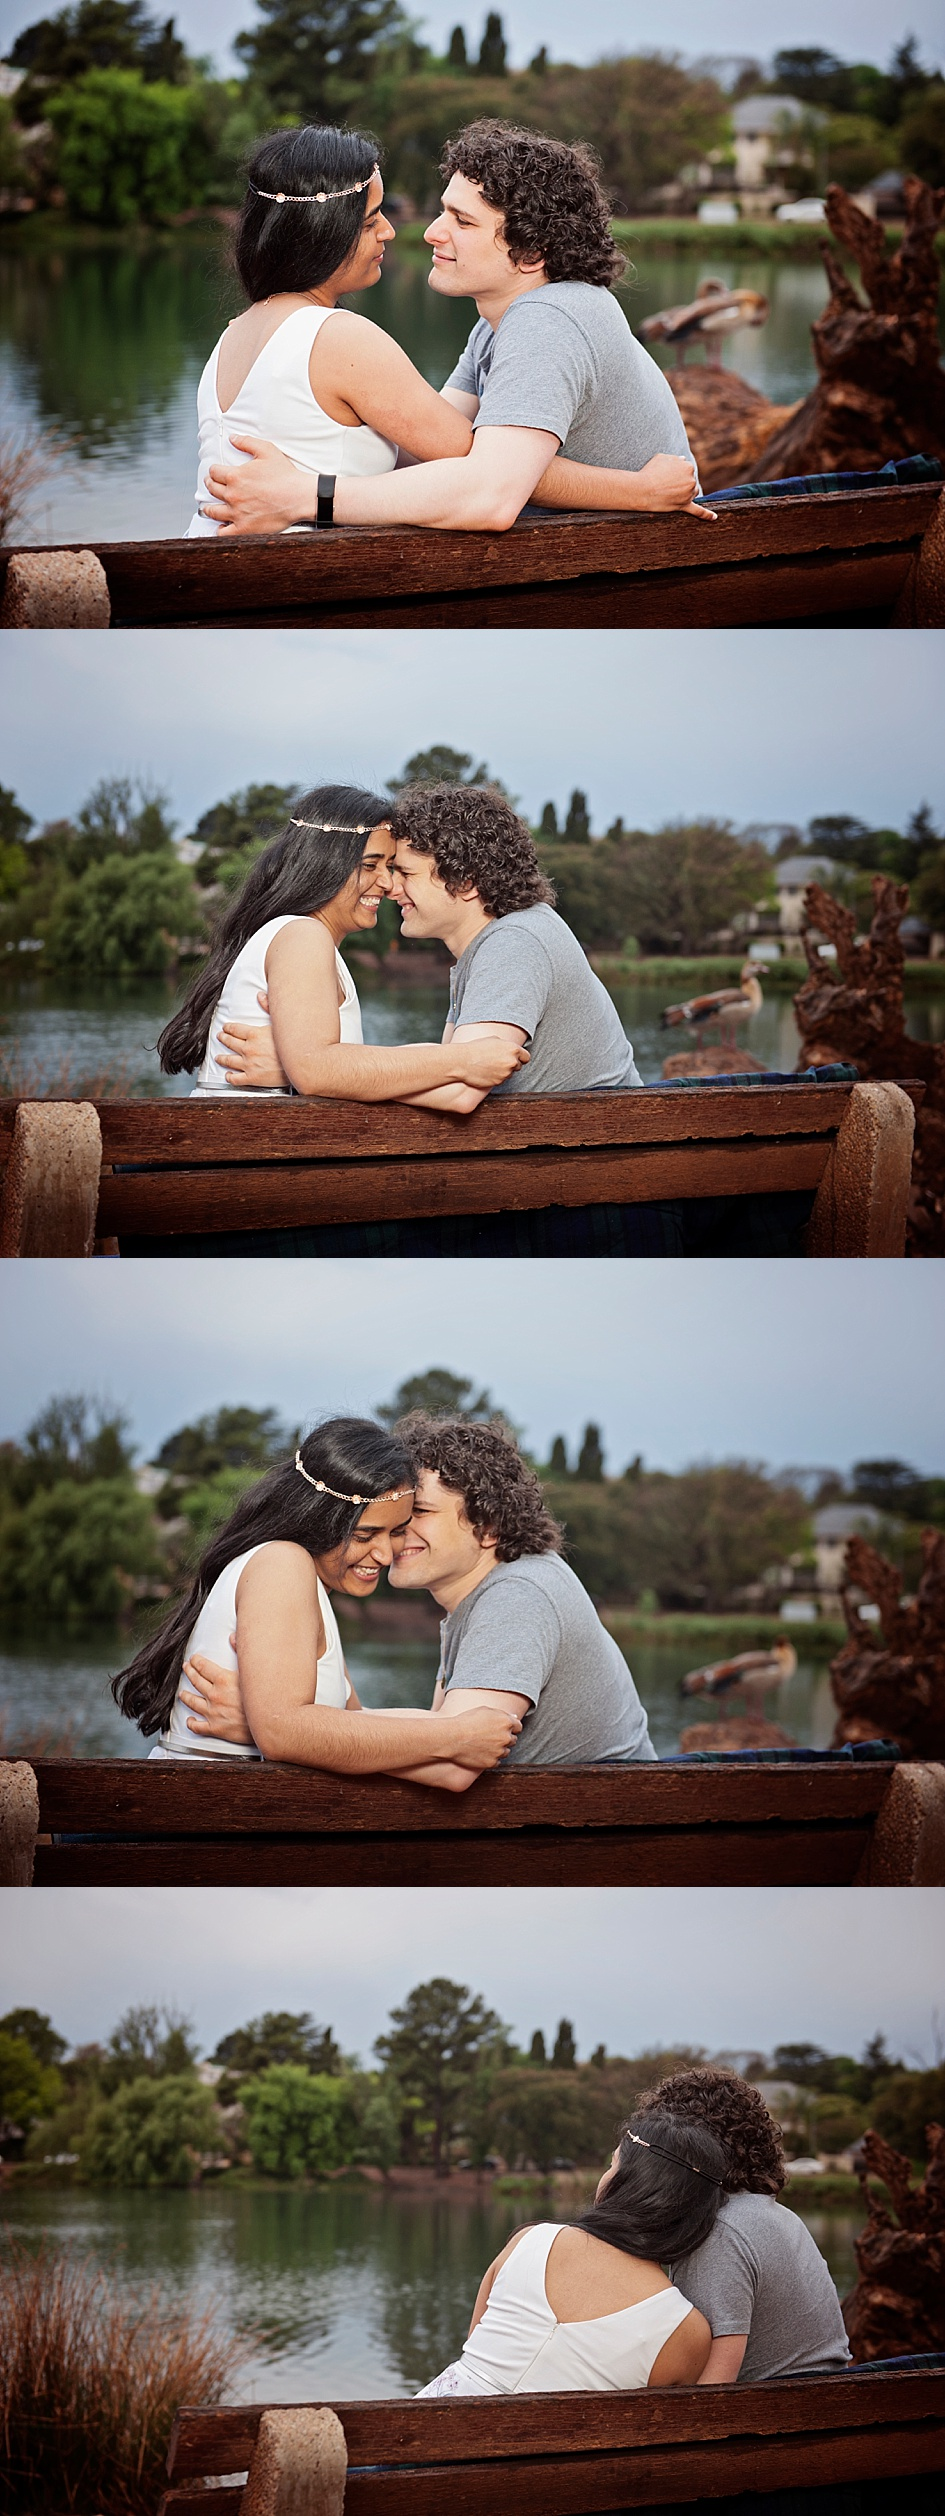 romantic-engagement-shoot-ideas.jpg